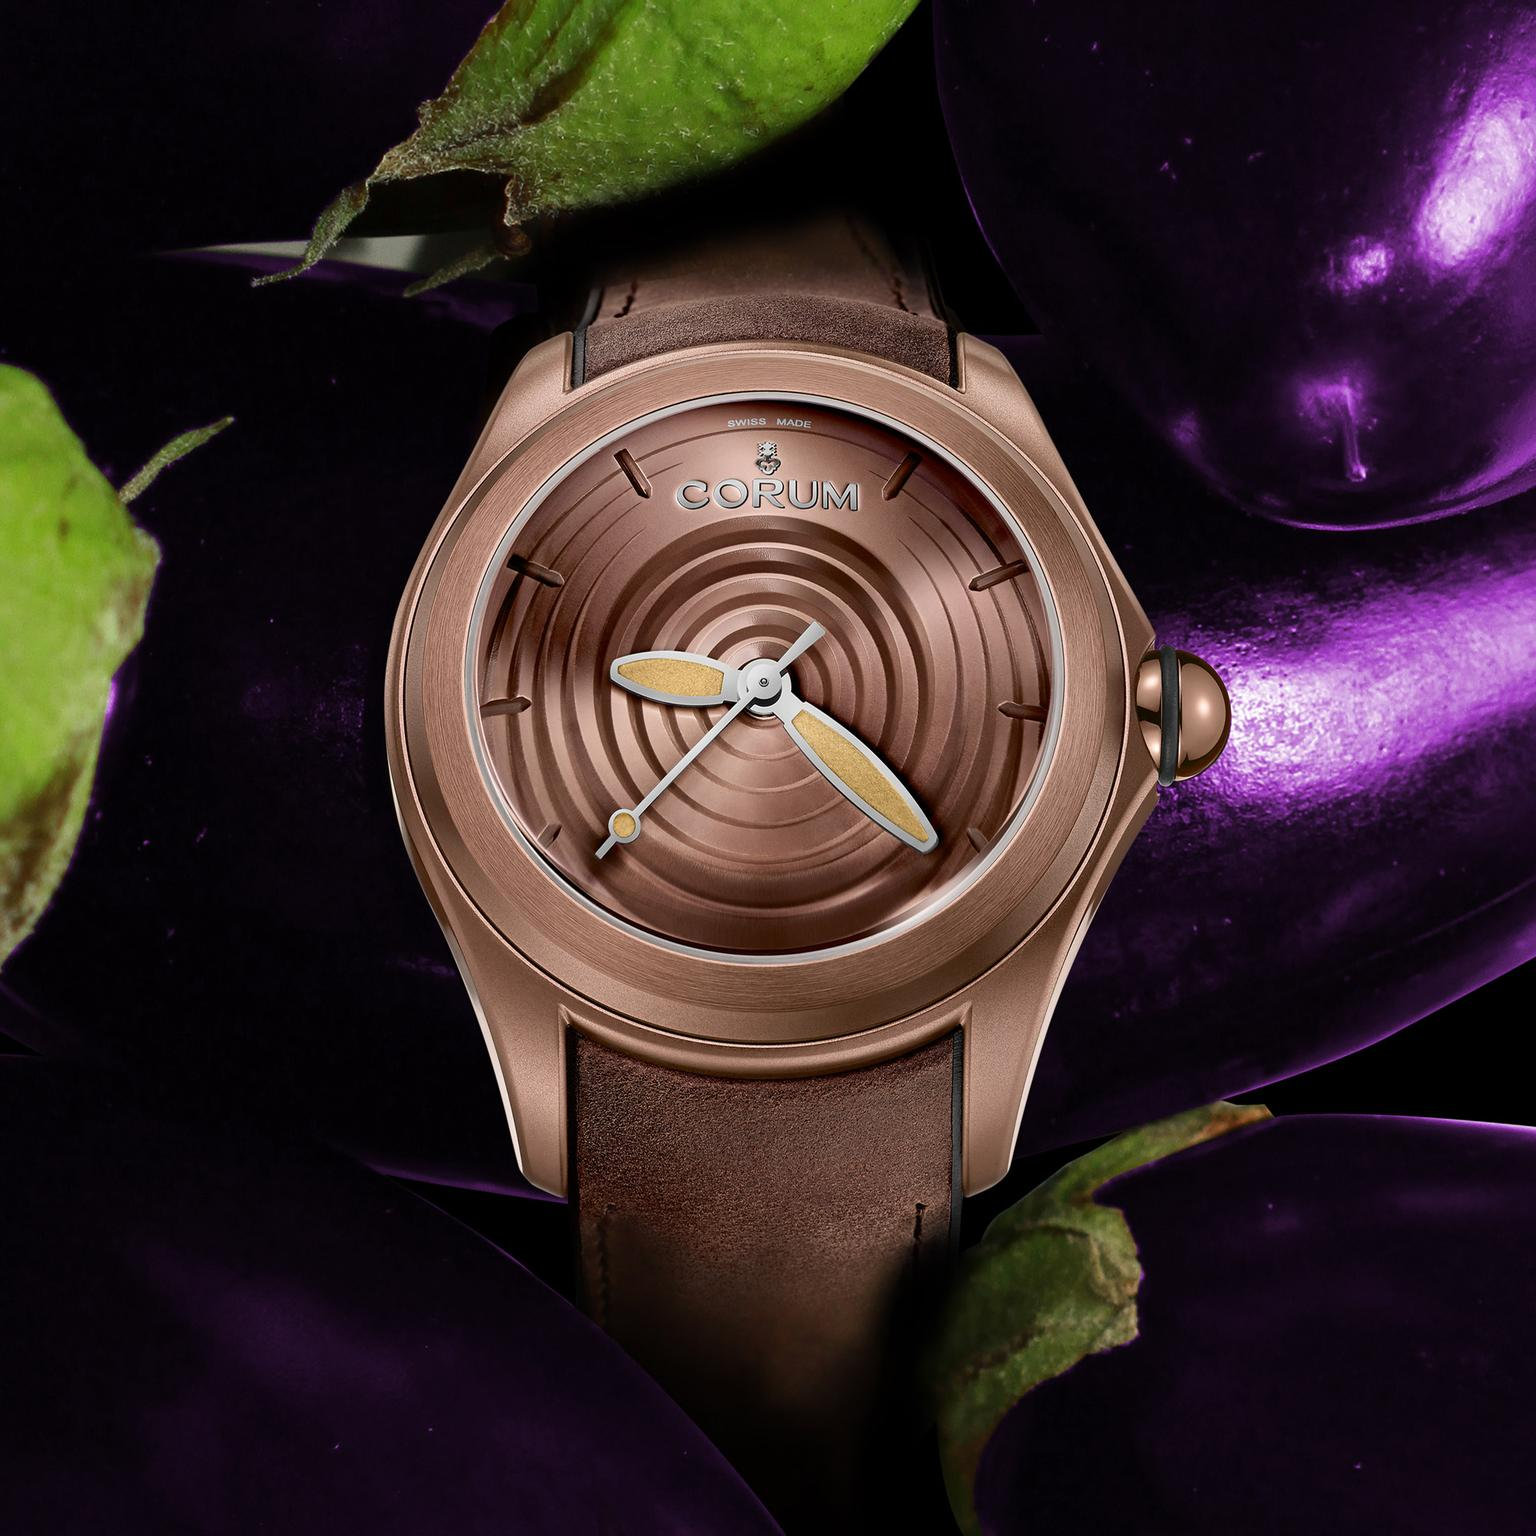 Corum Bubble Op Art watch in chocolate brown